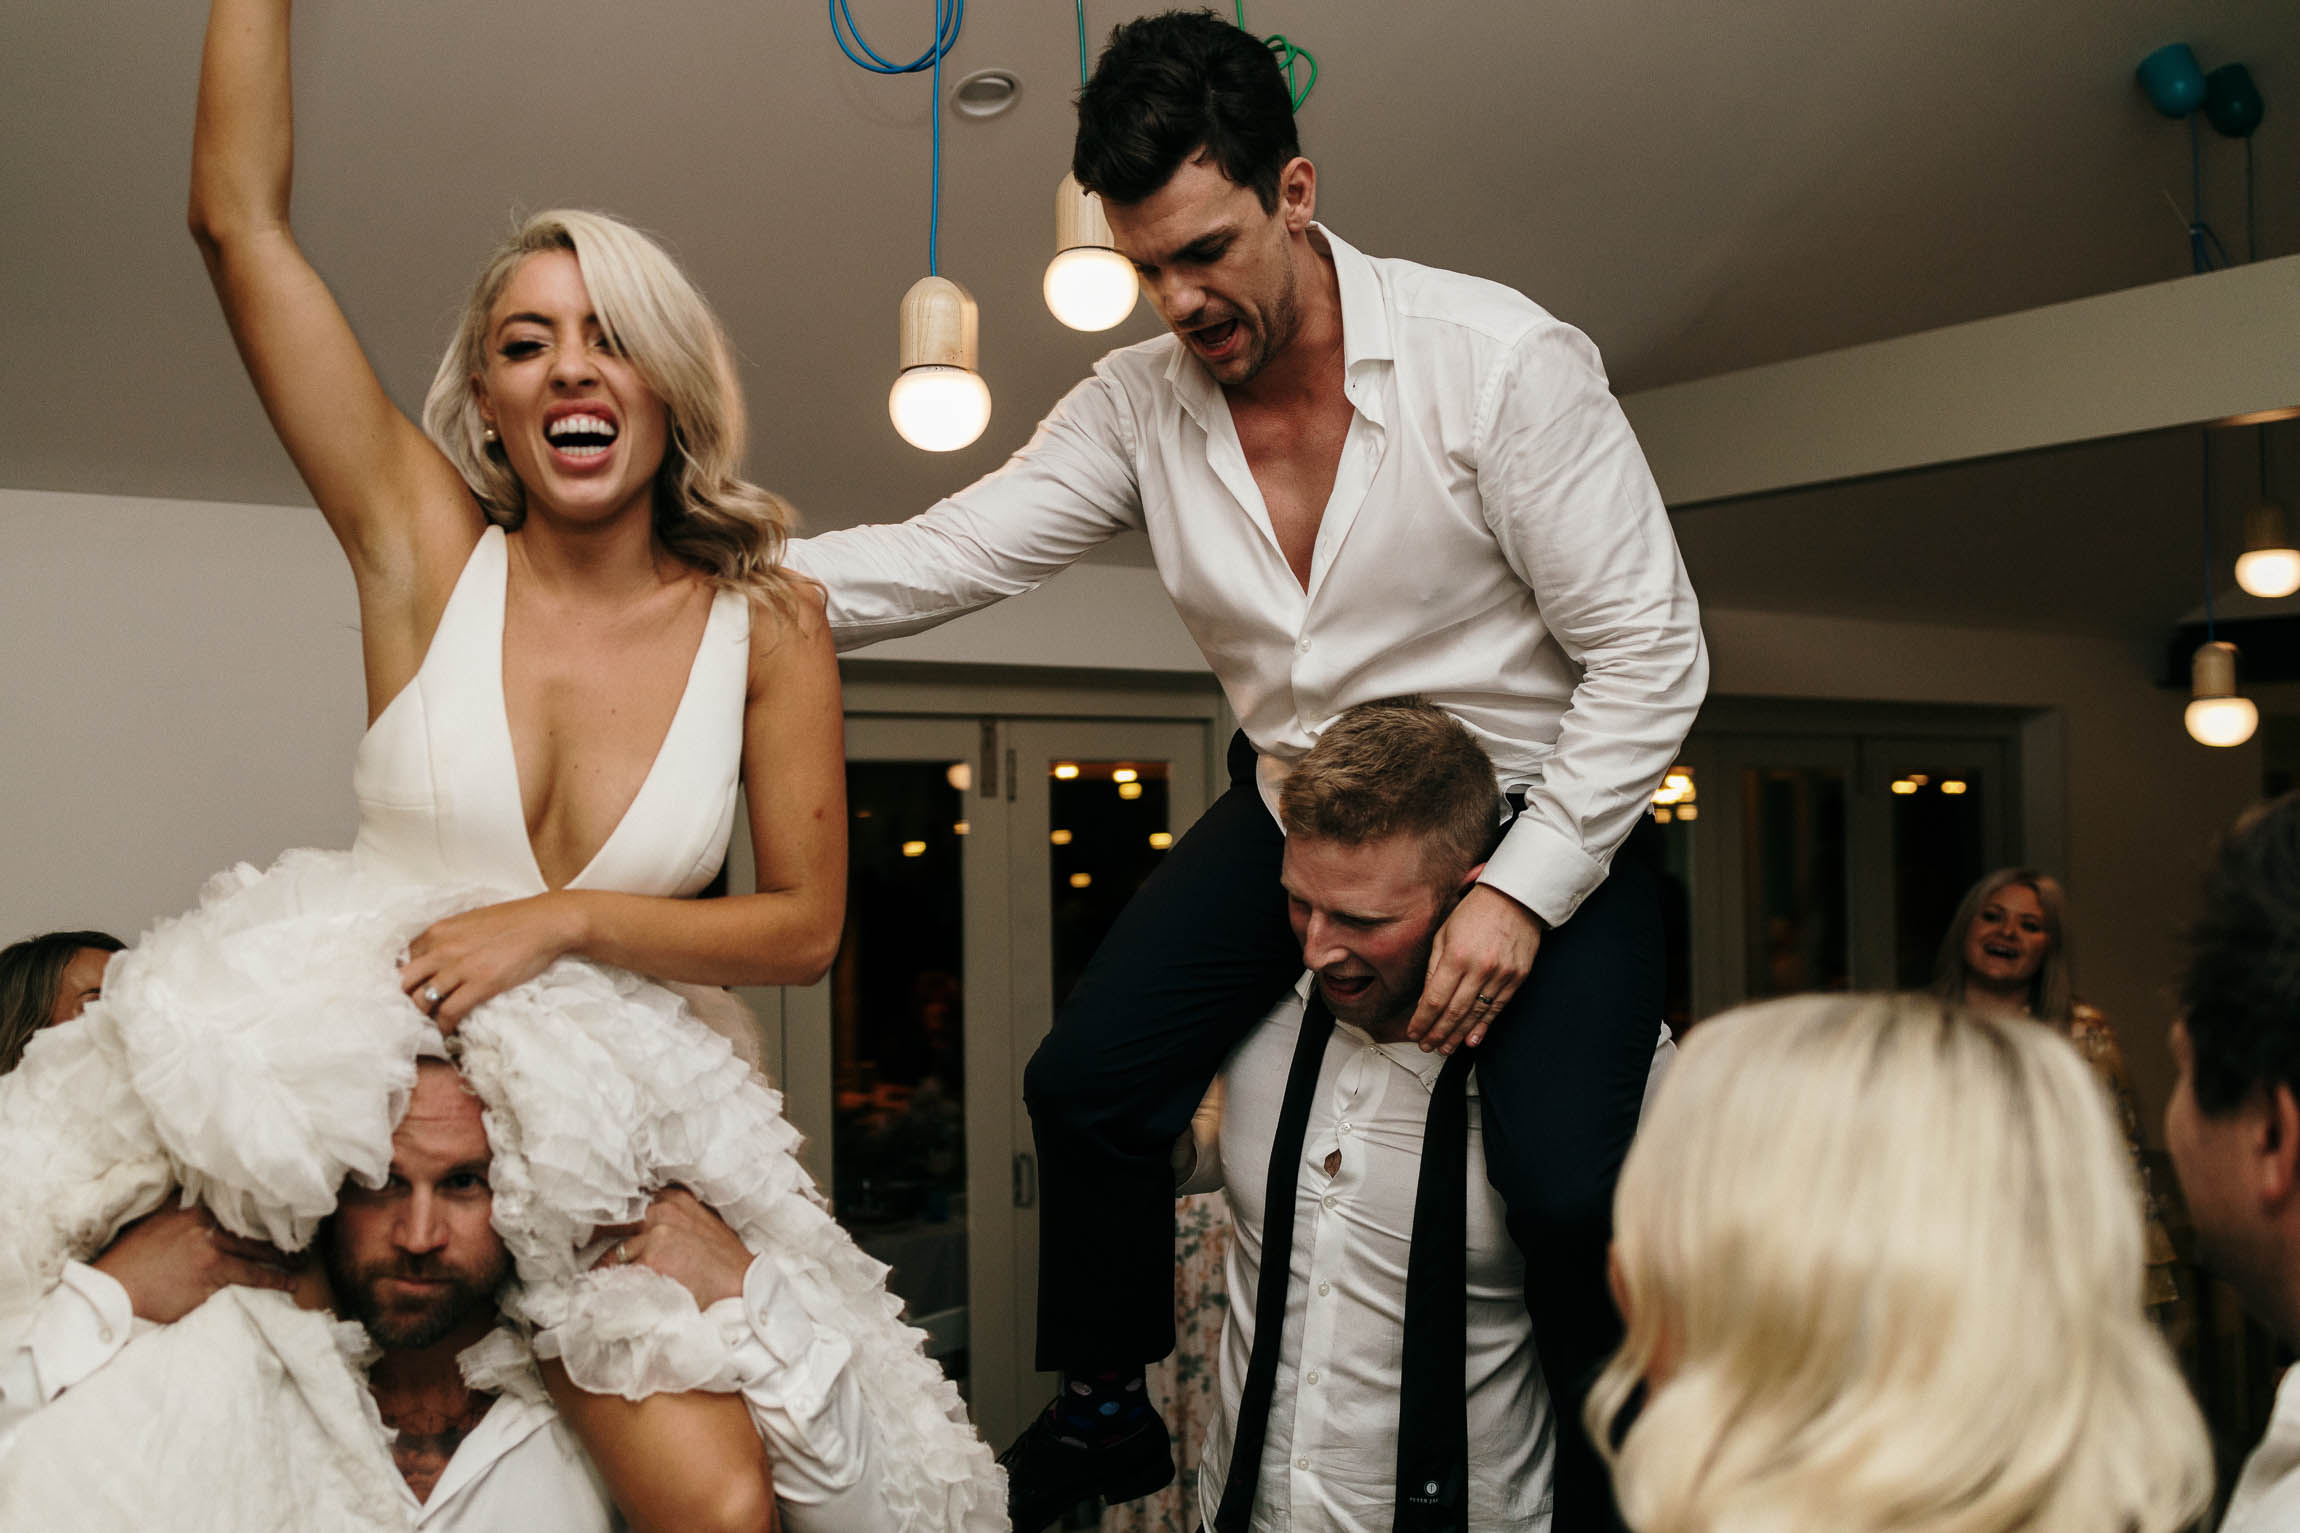 lachlan-scallion-melbourne-victoria-austrlia-mornington-peninsula-candid-relaxed-natural-chilled-wedding-photographyemma-will-tucks-wine-638.jpg